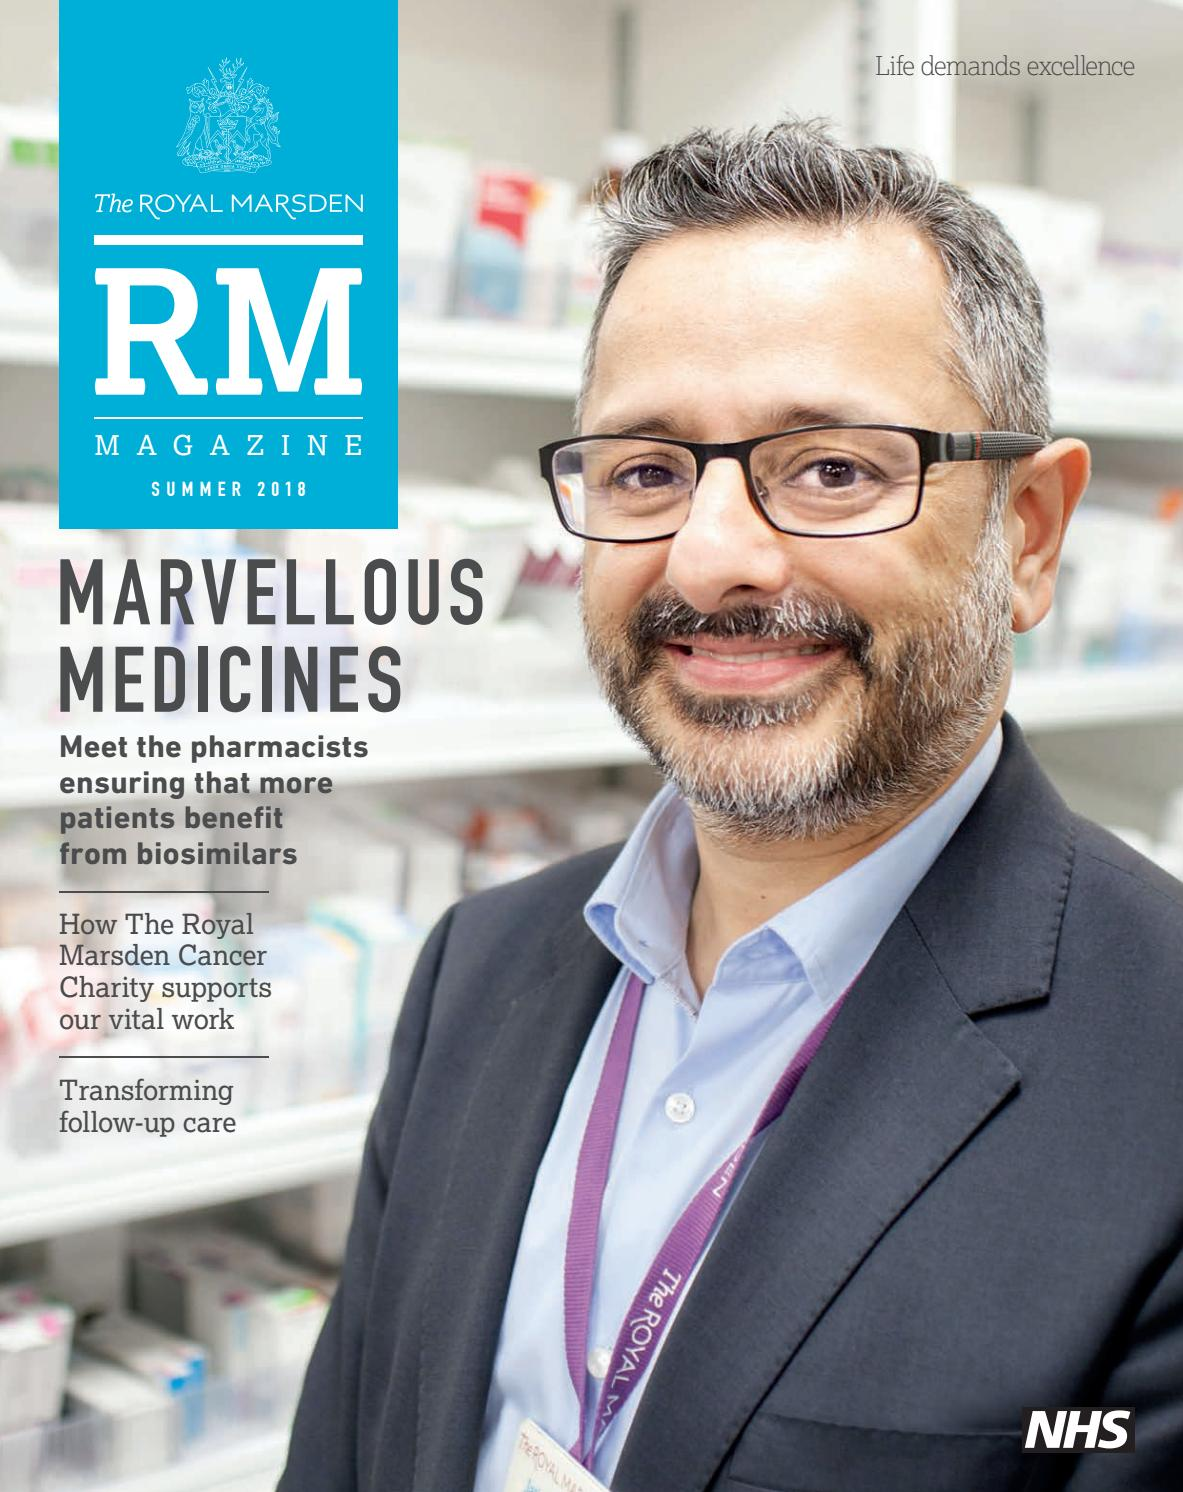 RM Magazine Summer 2018 by The Royal Marsden - issuu